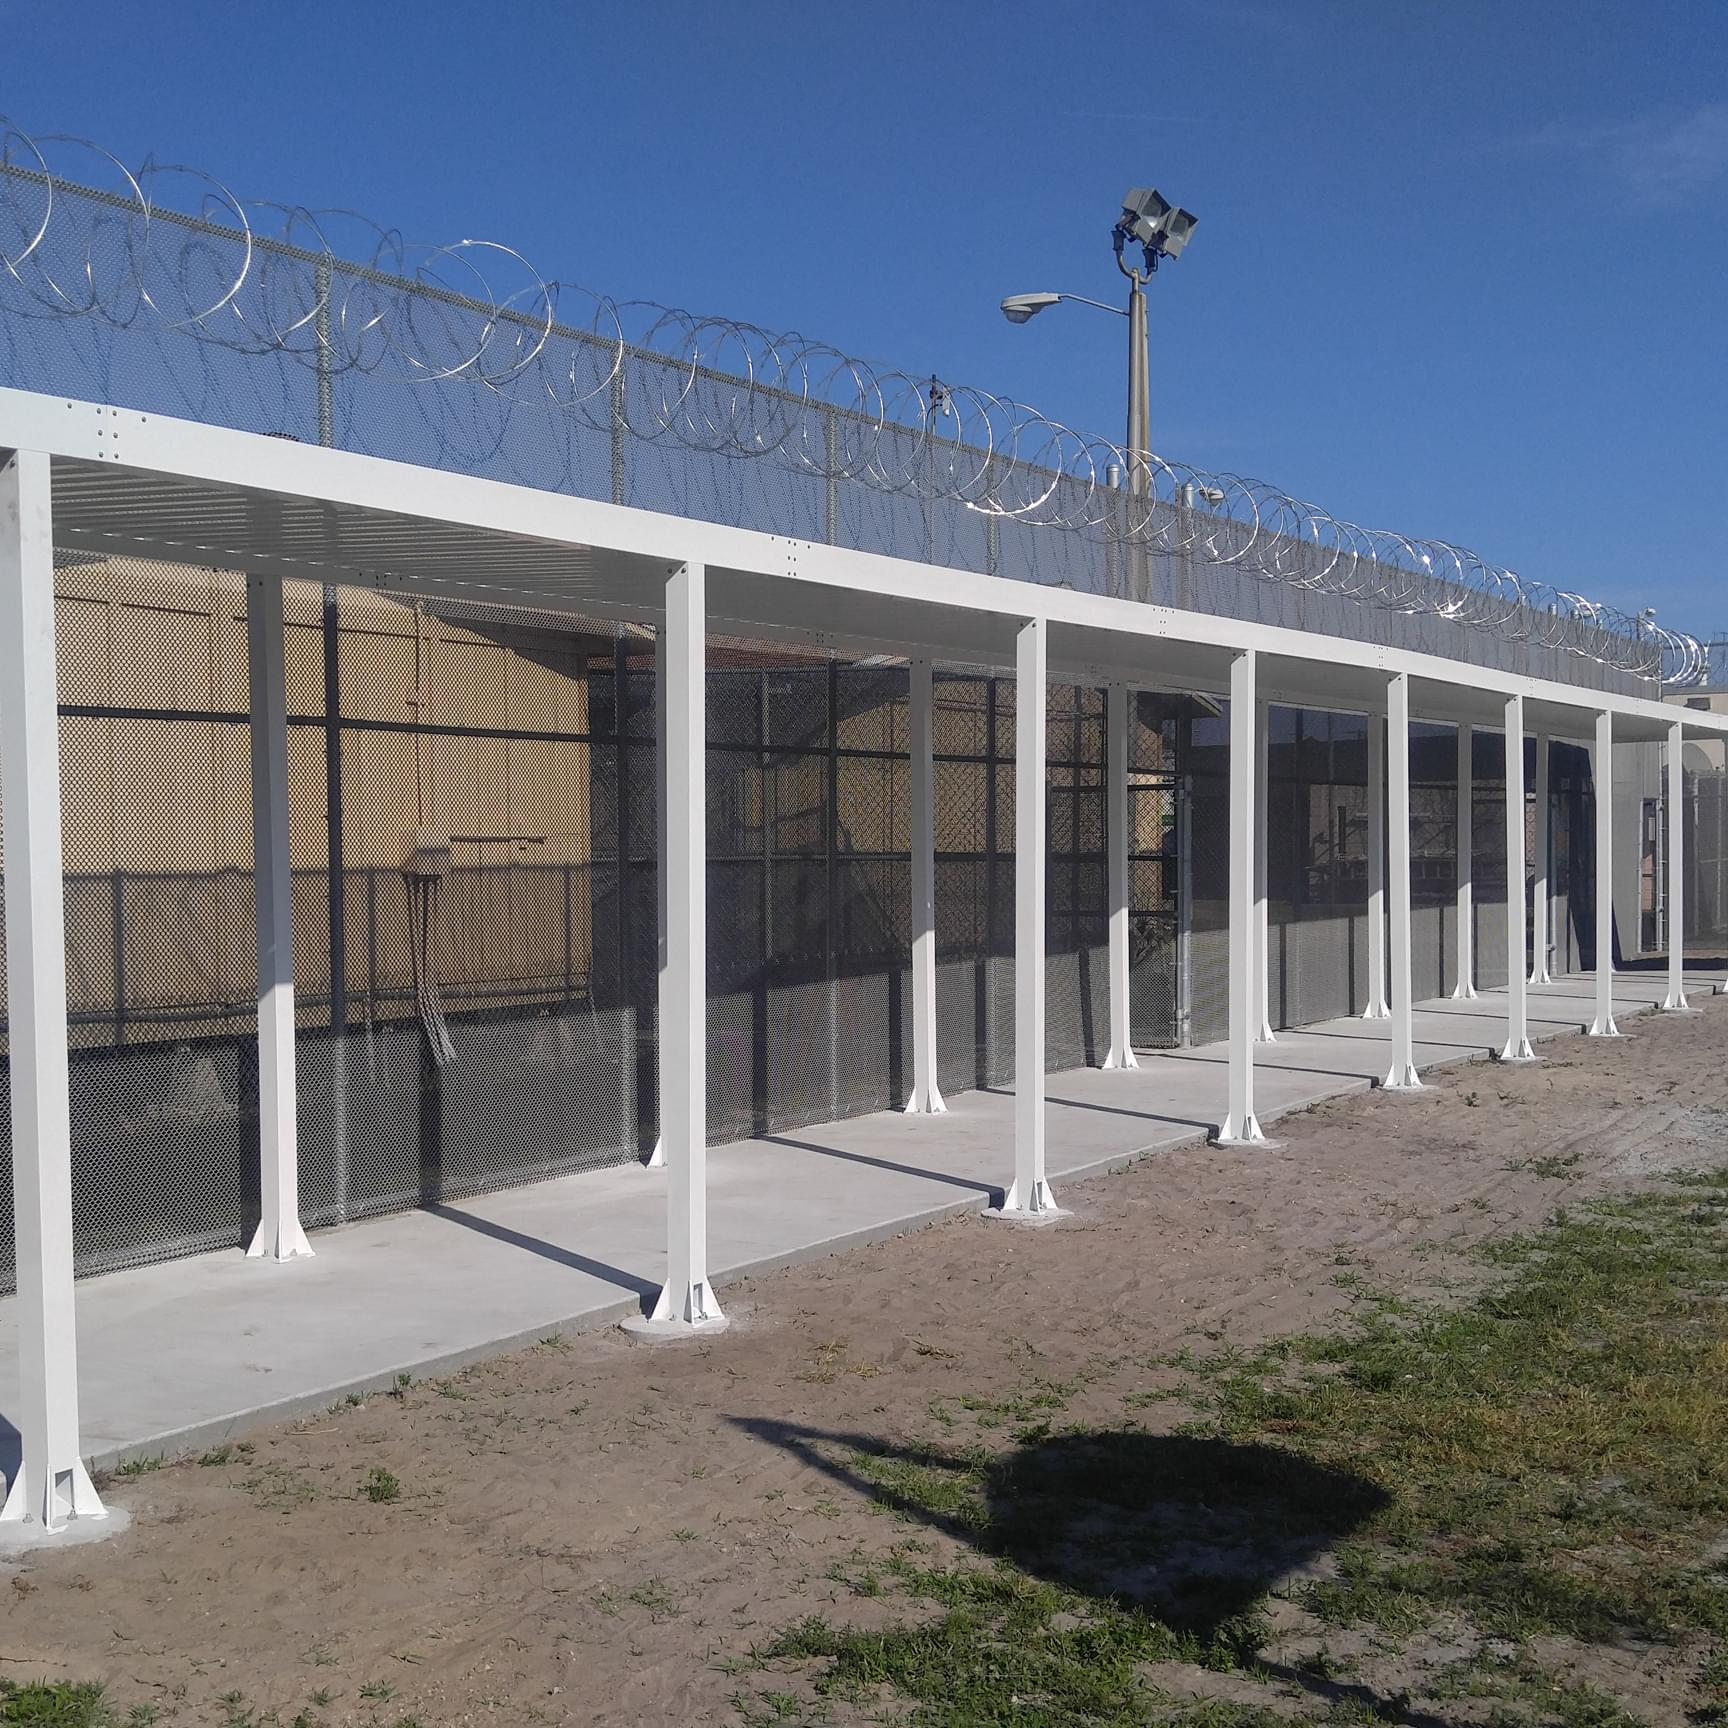 Sidewalk canopy for correctional facility & 4 Types of Industrial Aluminum Canopy Designs - Upside Innovations